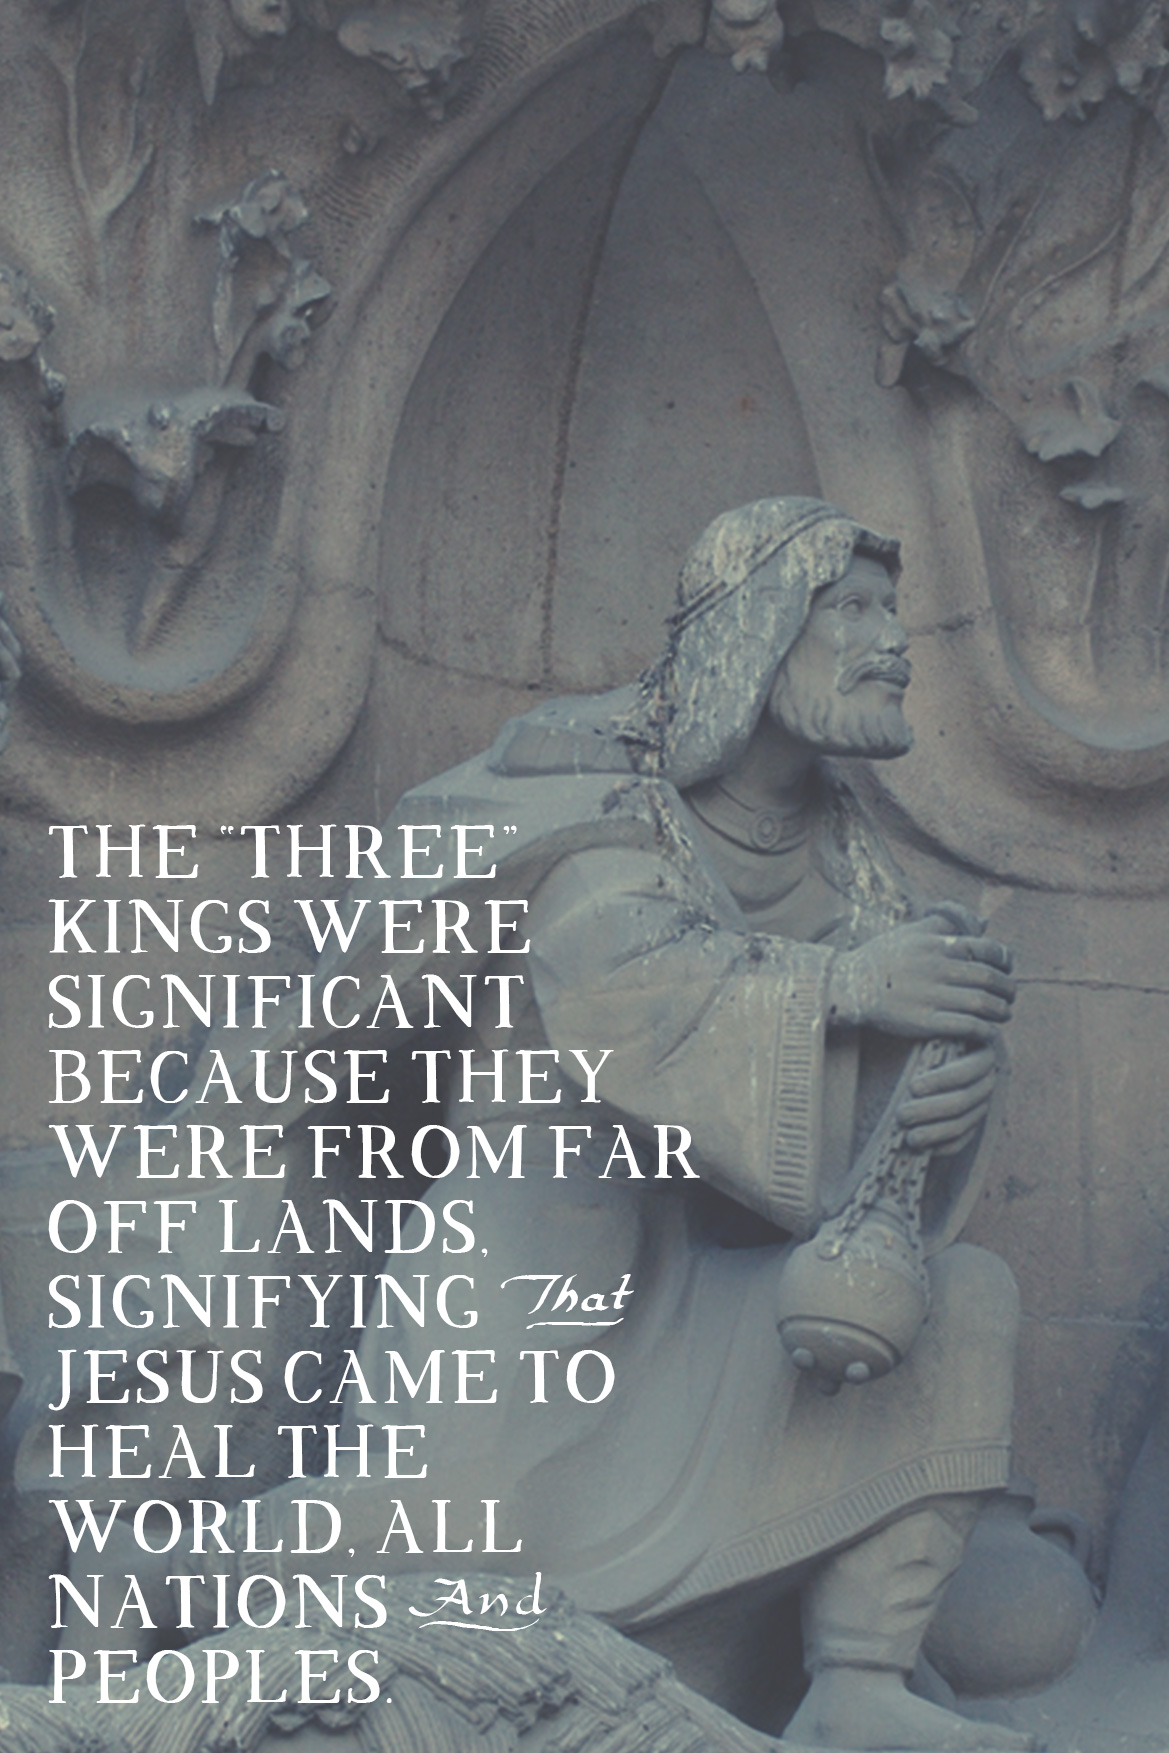 JANUARY 6TH: 3 KINGS CELEBRATION - New Identity Magazine